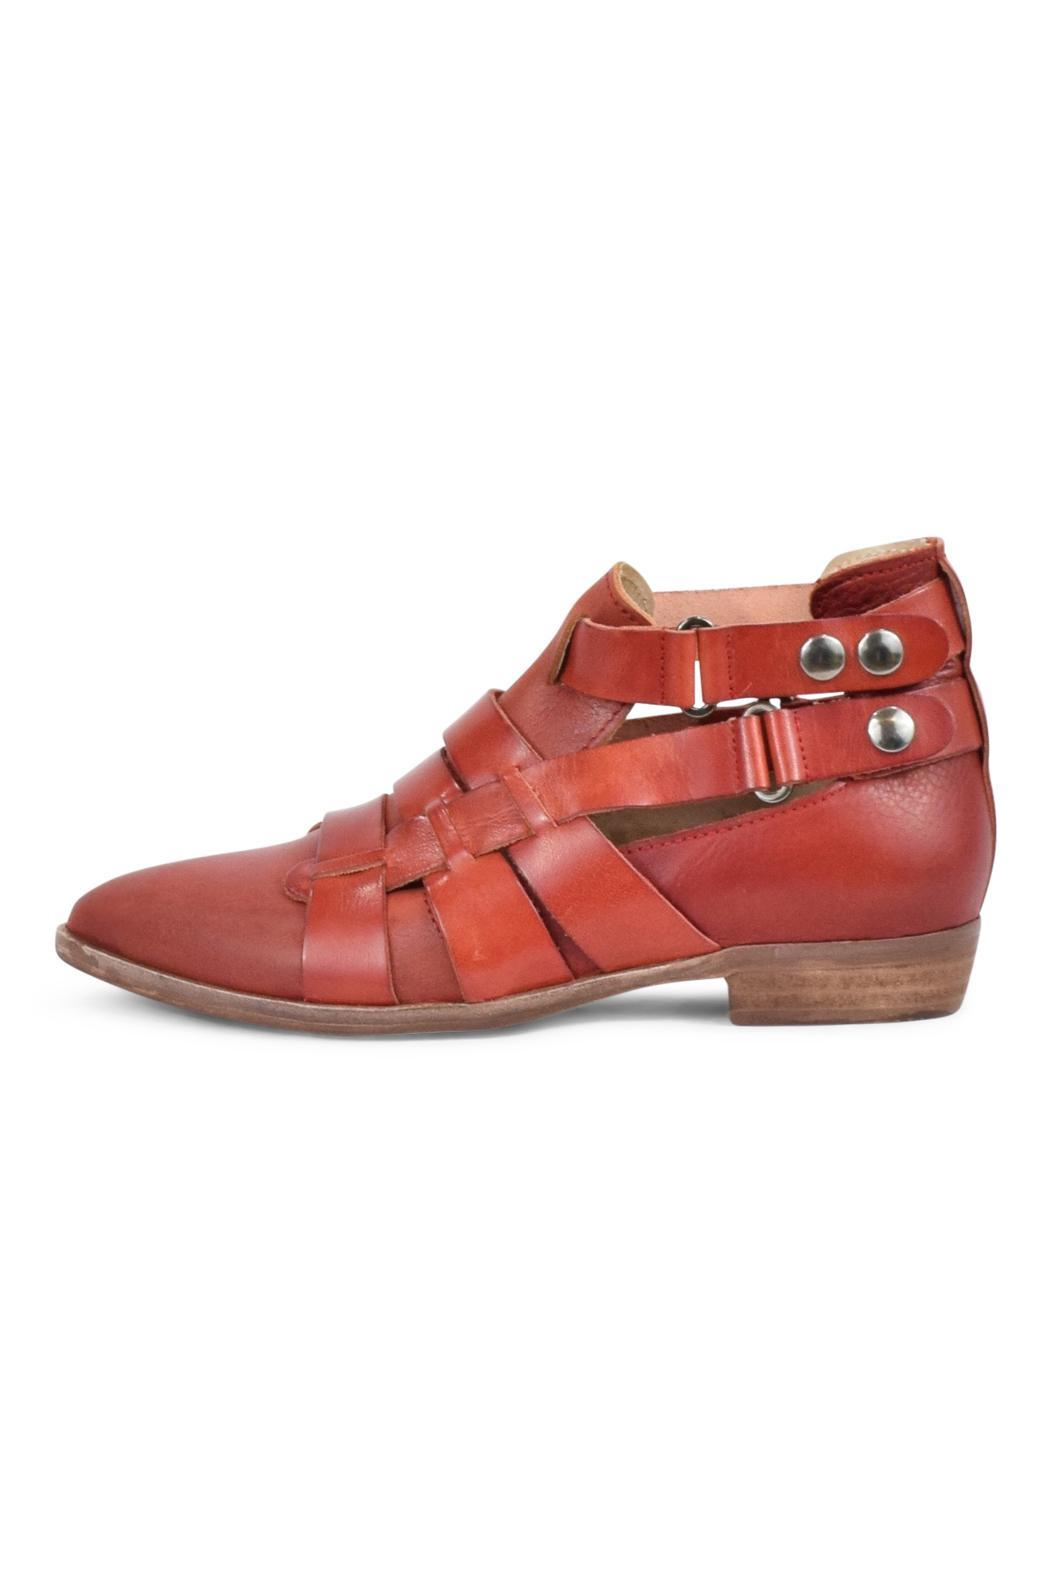 Free People Red Leather Bootie - Main Image